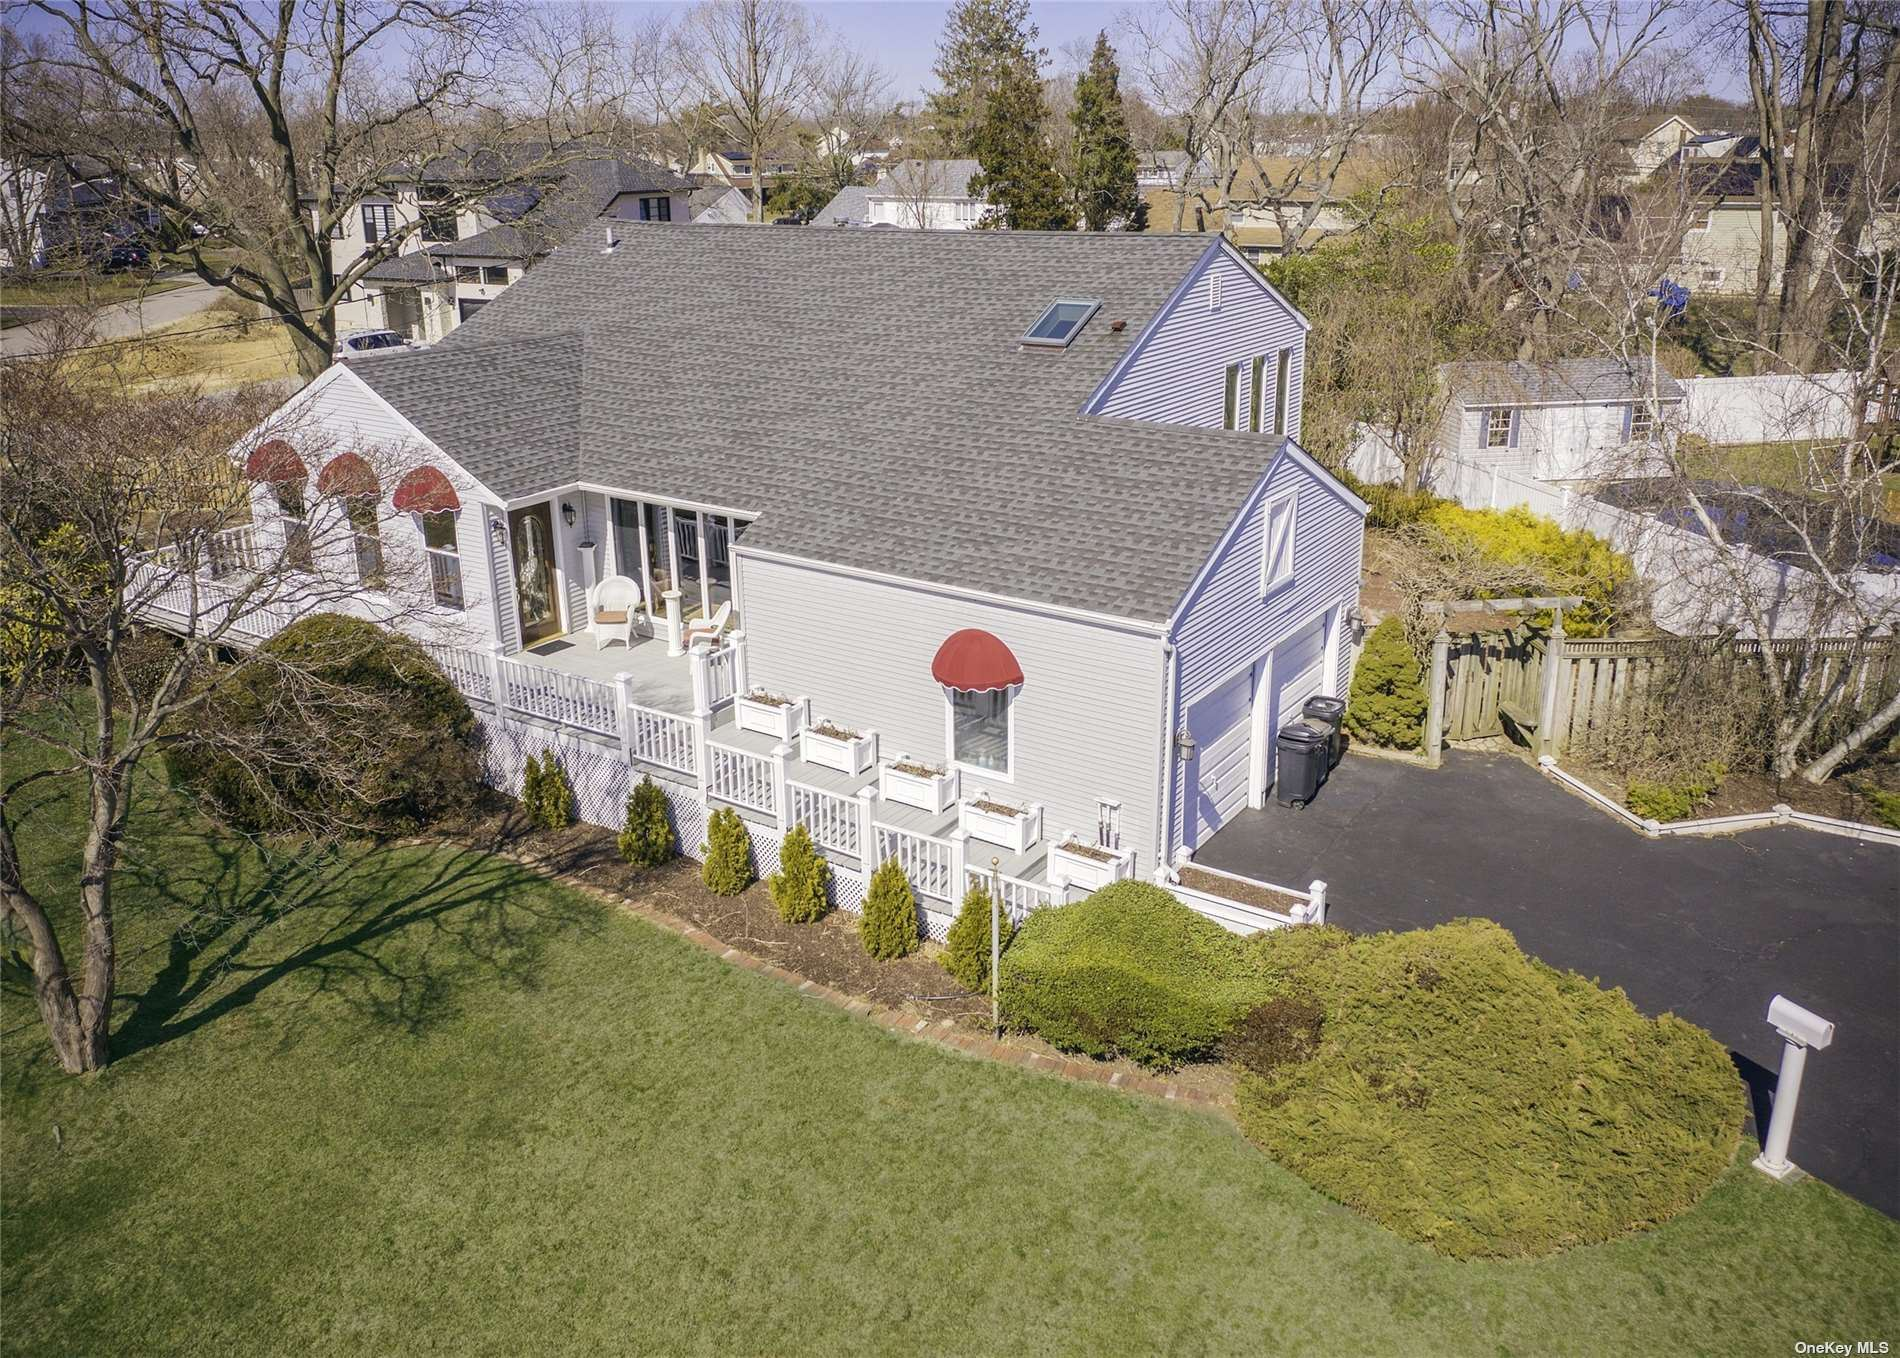 477 Everdell Avenue, West Islip, NY 11795 - MLS#: 3298855